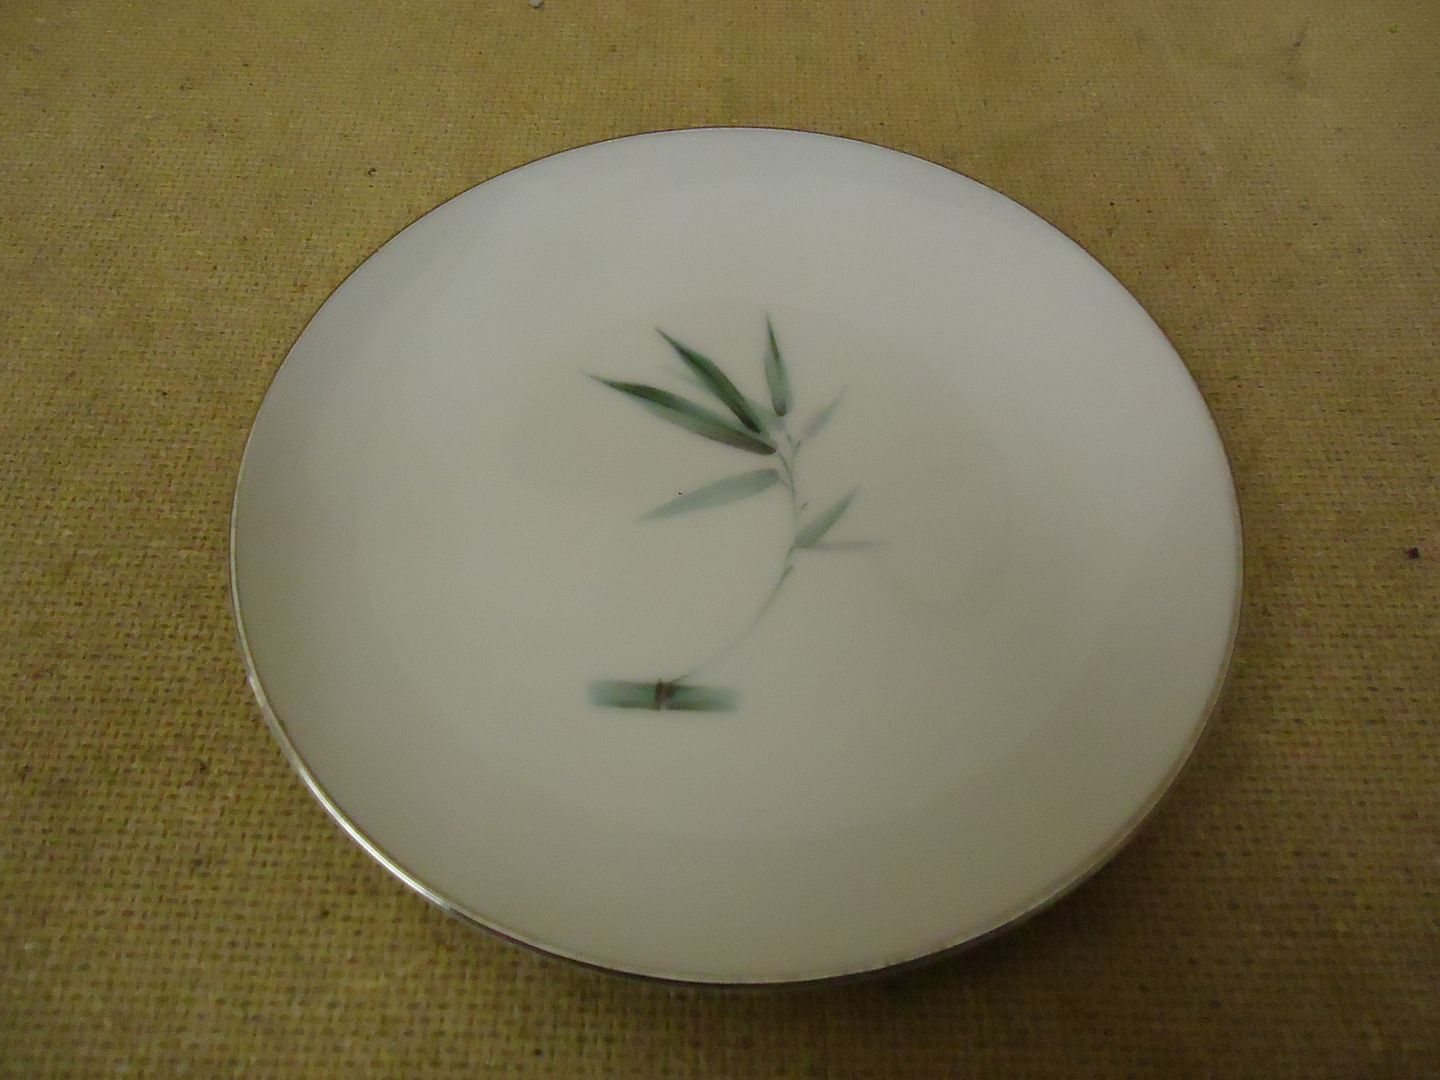 122912-382a Sango Vintage Bread & Butter Plate 6 1/8in Diameter Bamboo Knight China